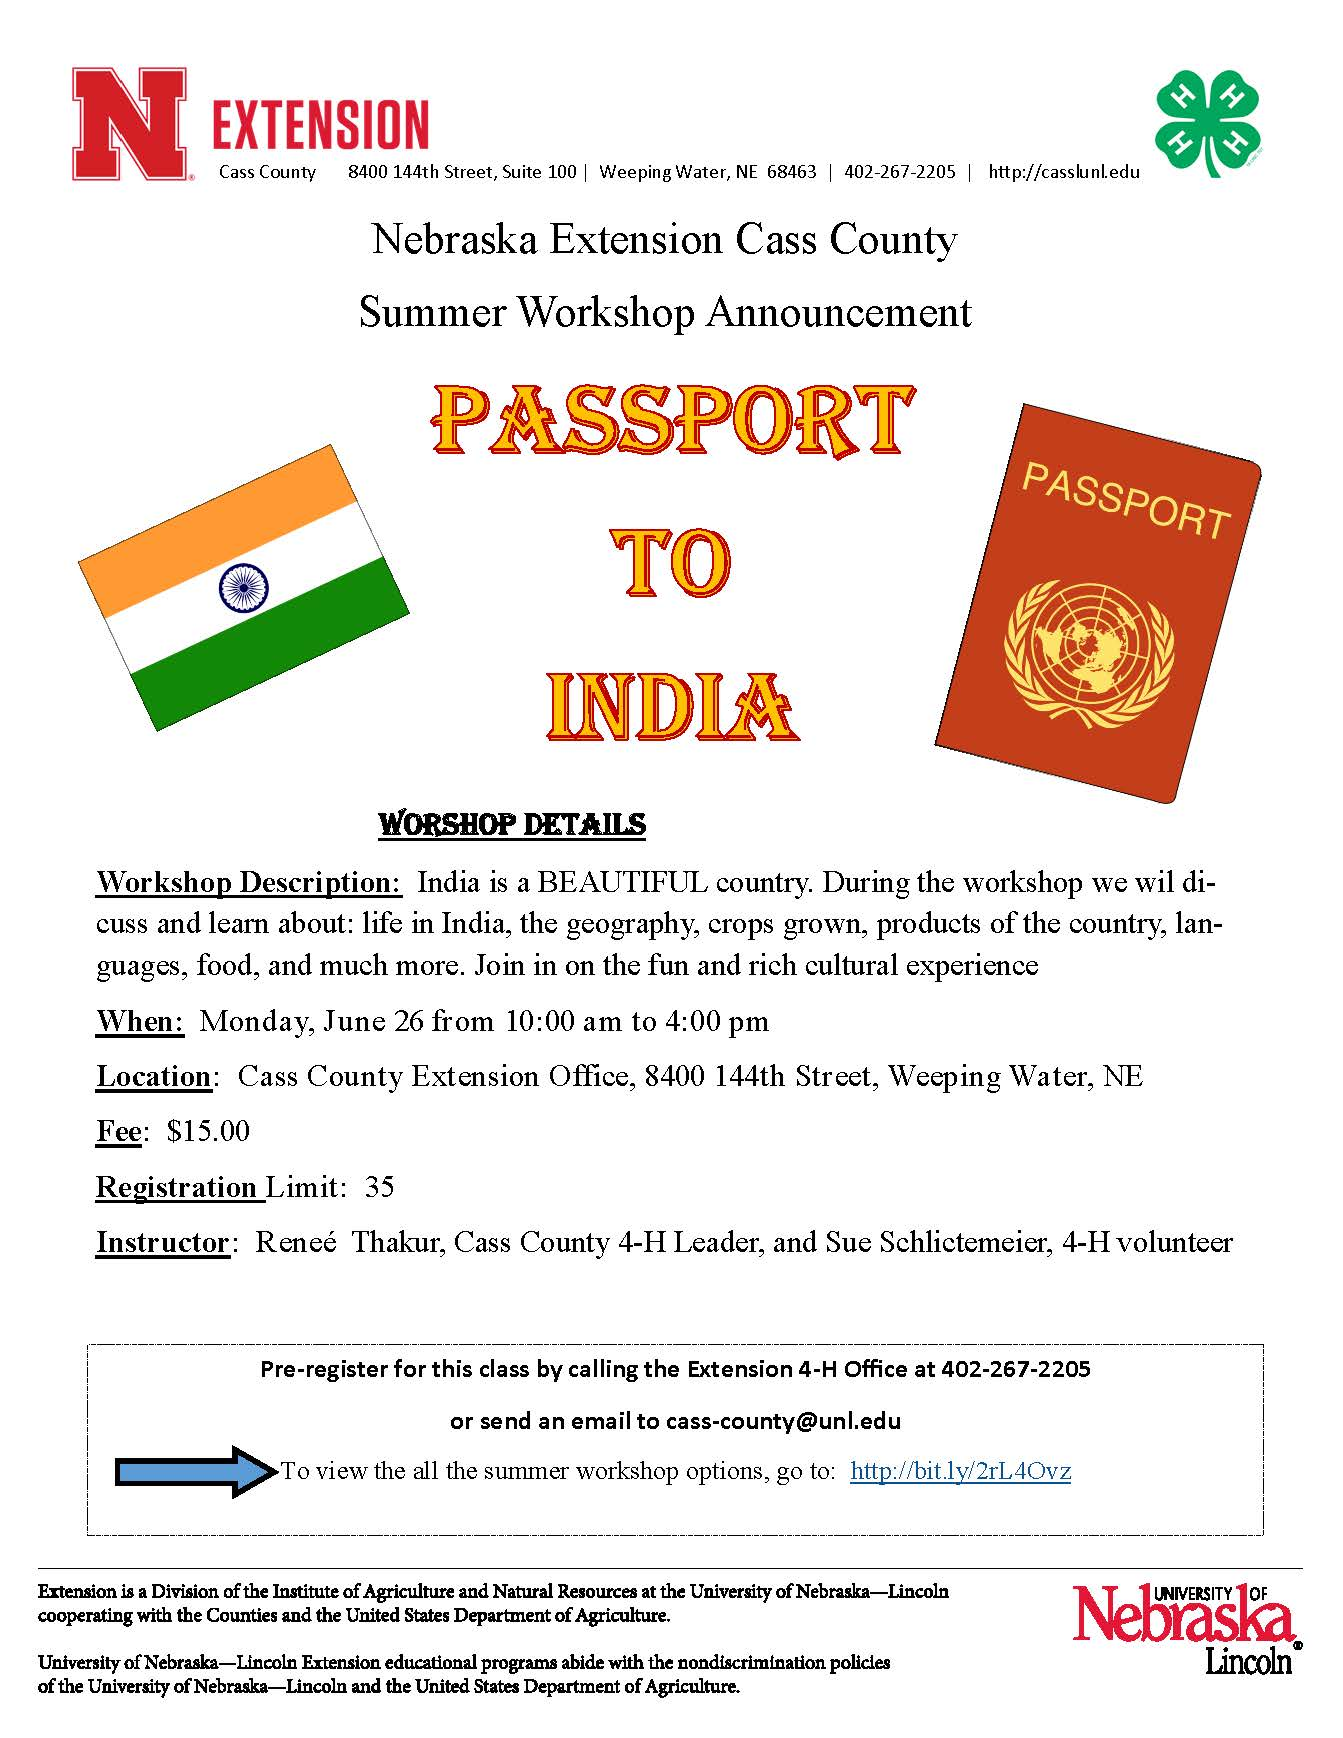 12 Passport to India